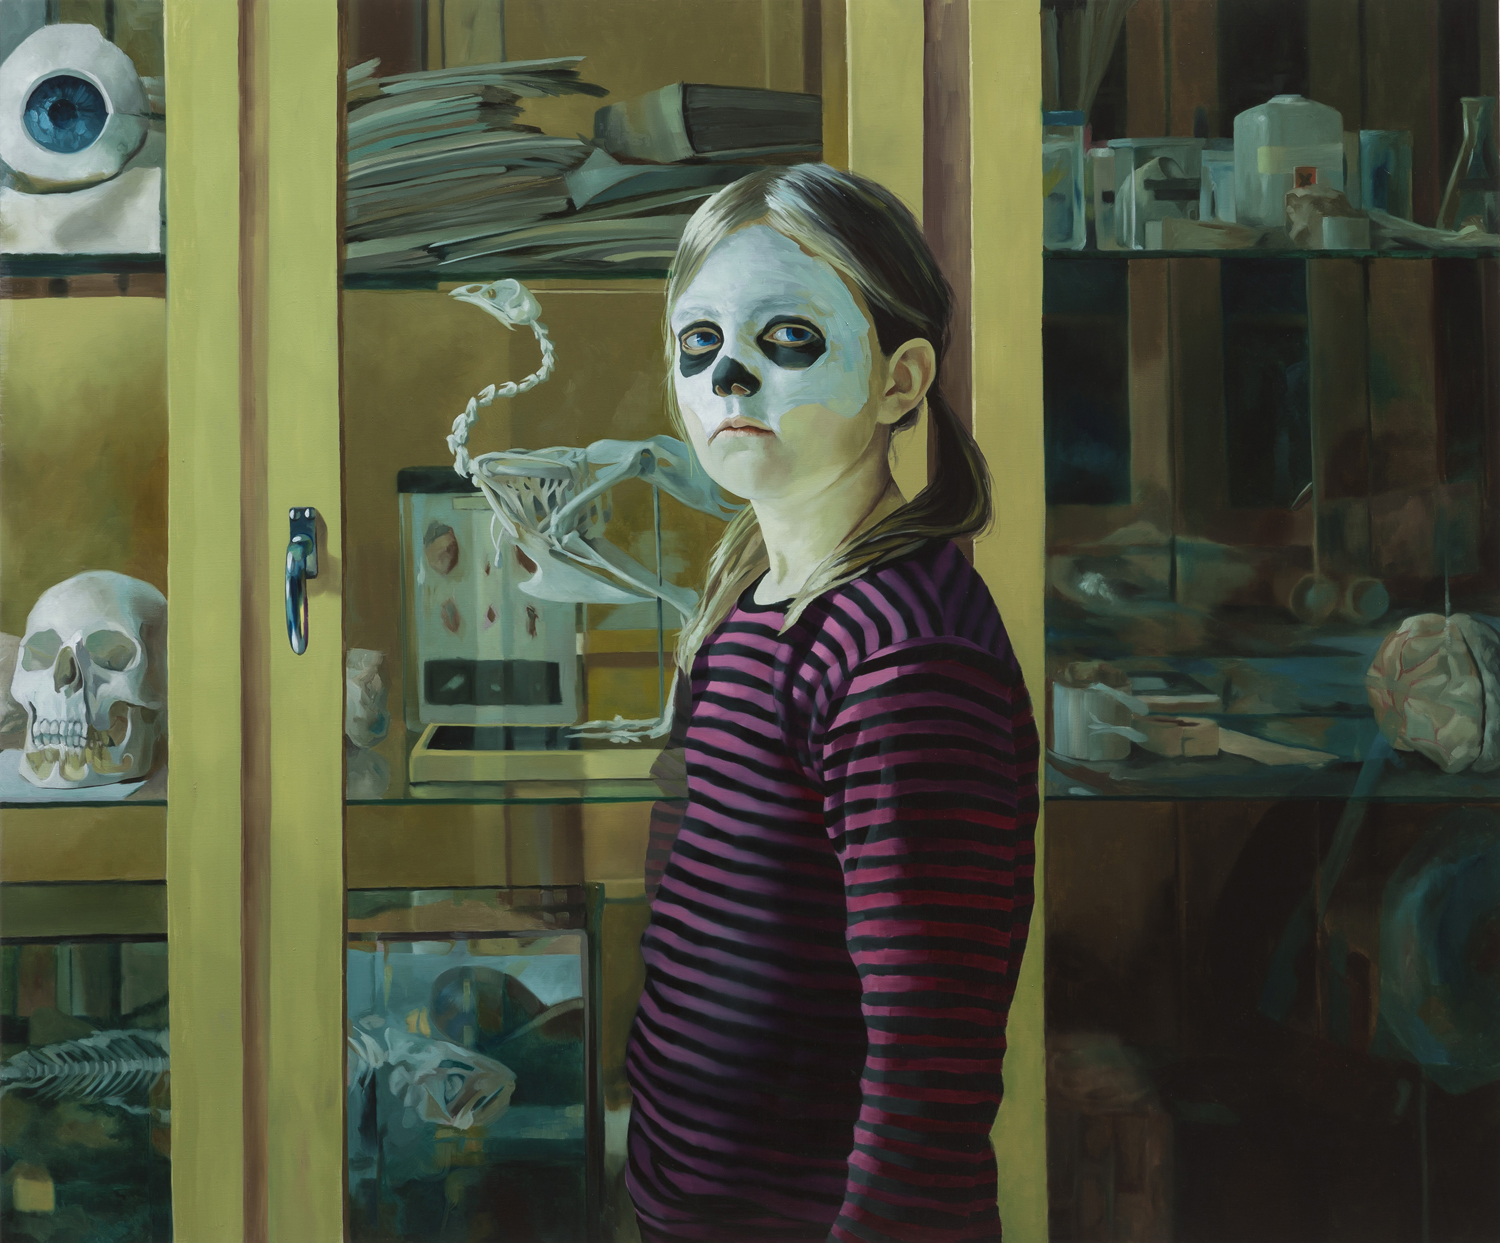 Psychopomp-Club-in-front-of-the-cabinet-2014-oil-on-linen-100x120cm-web